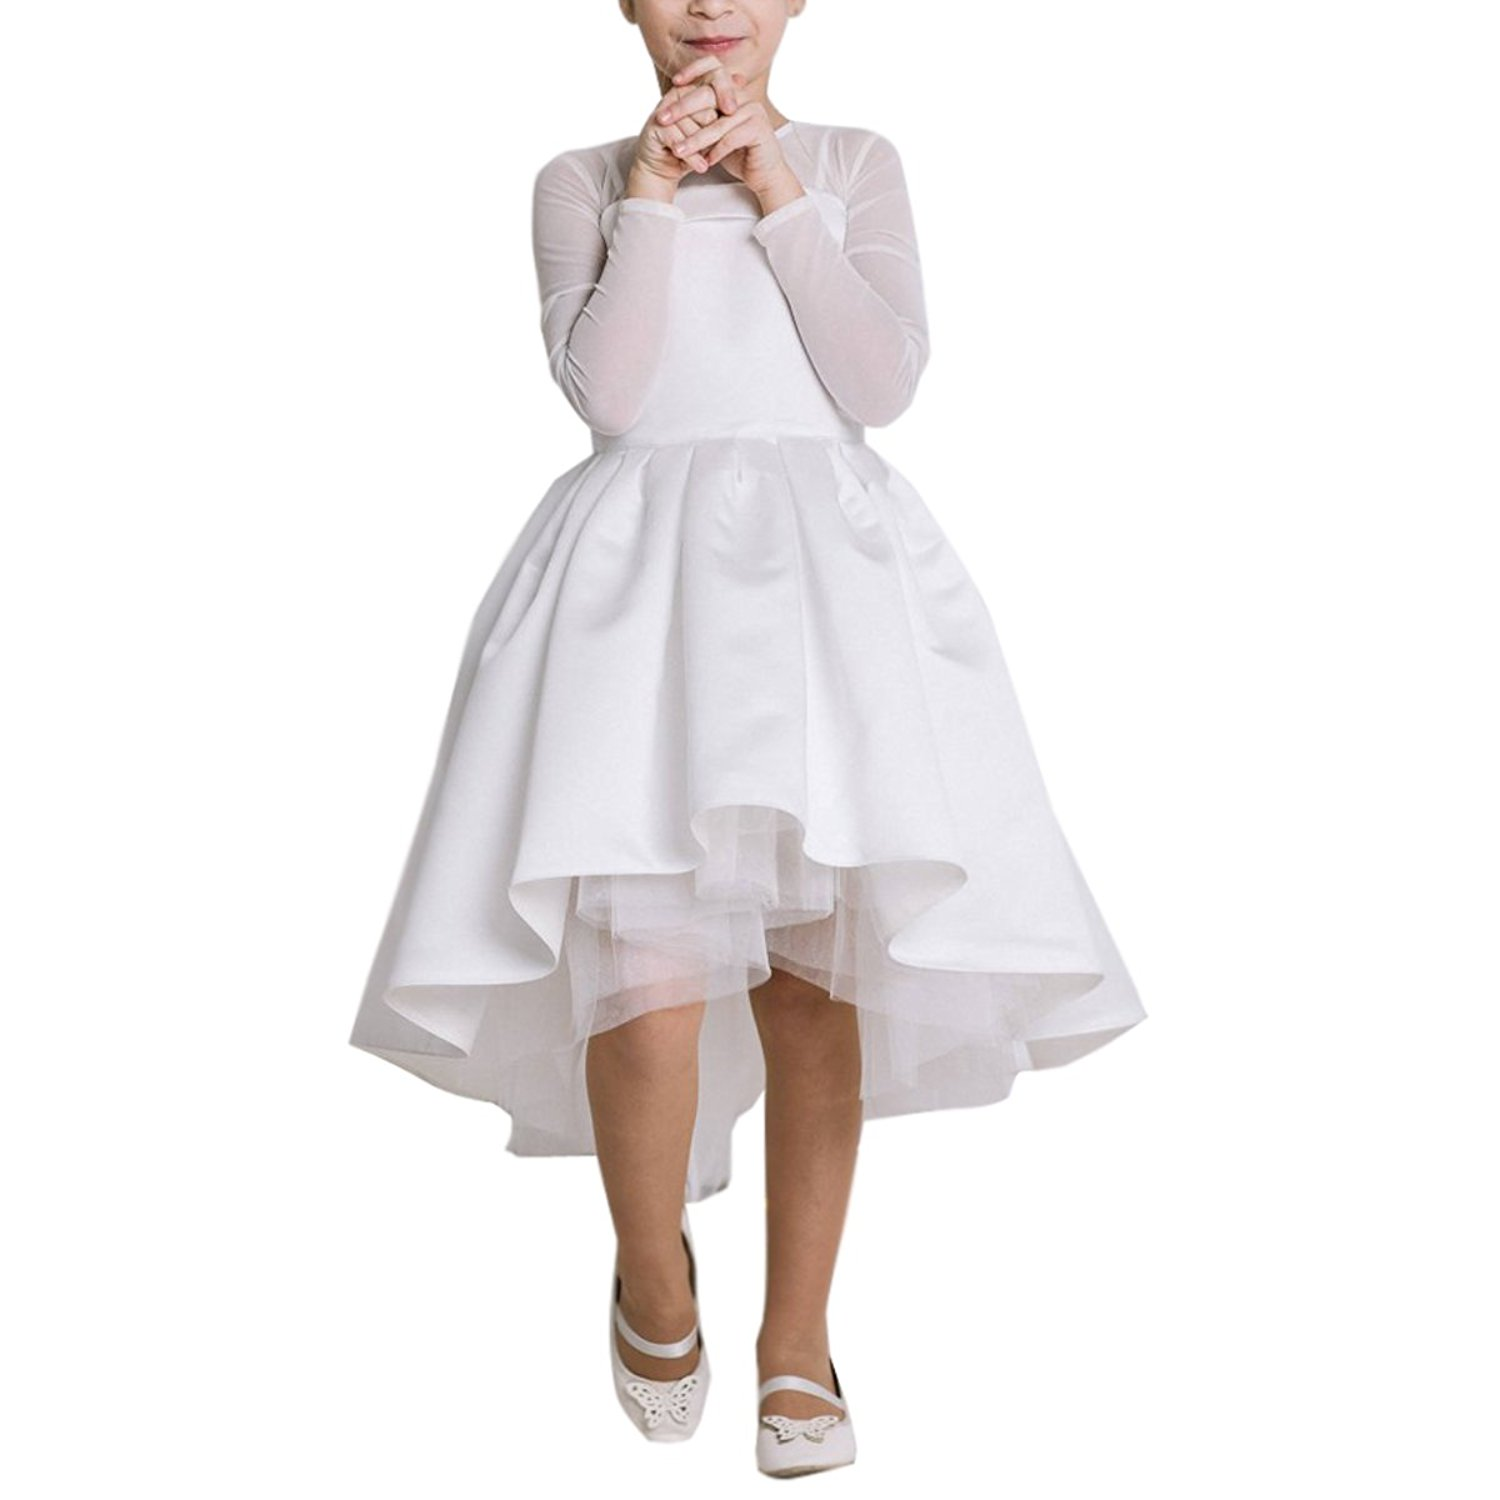 c2c36ae24f Get Quotations · Portsvy 2018 White High-Low Flower Girl Dresses First  Communion Party Dresses